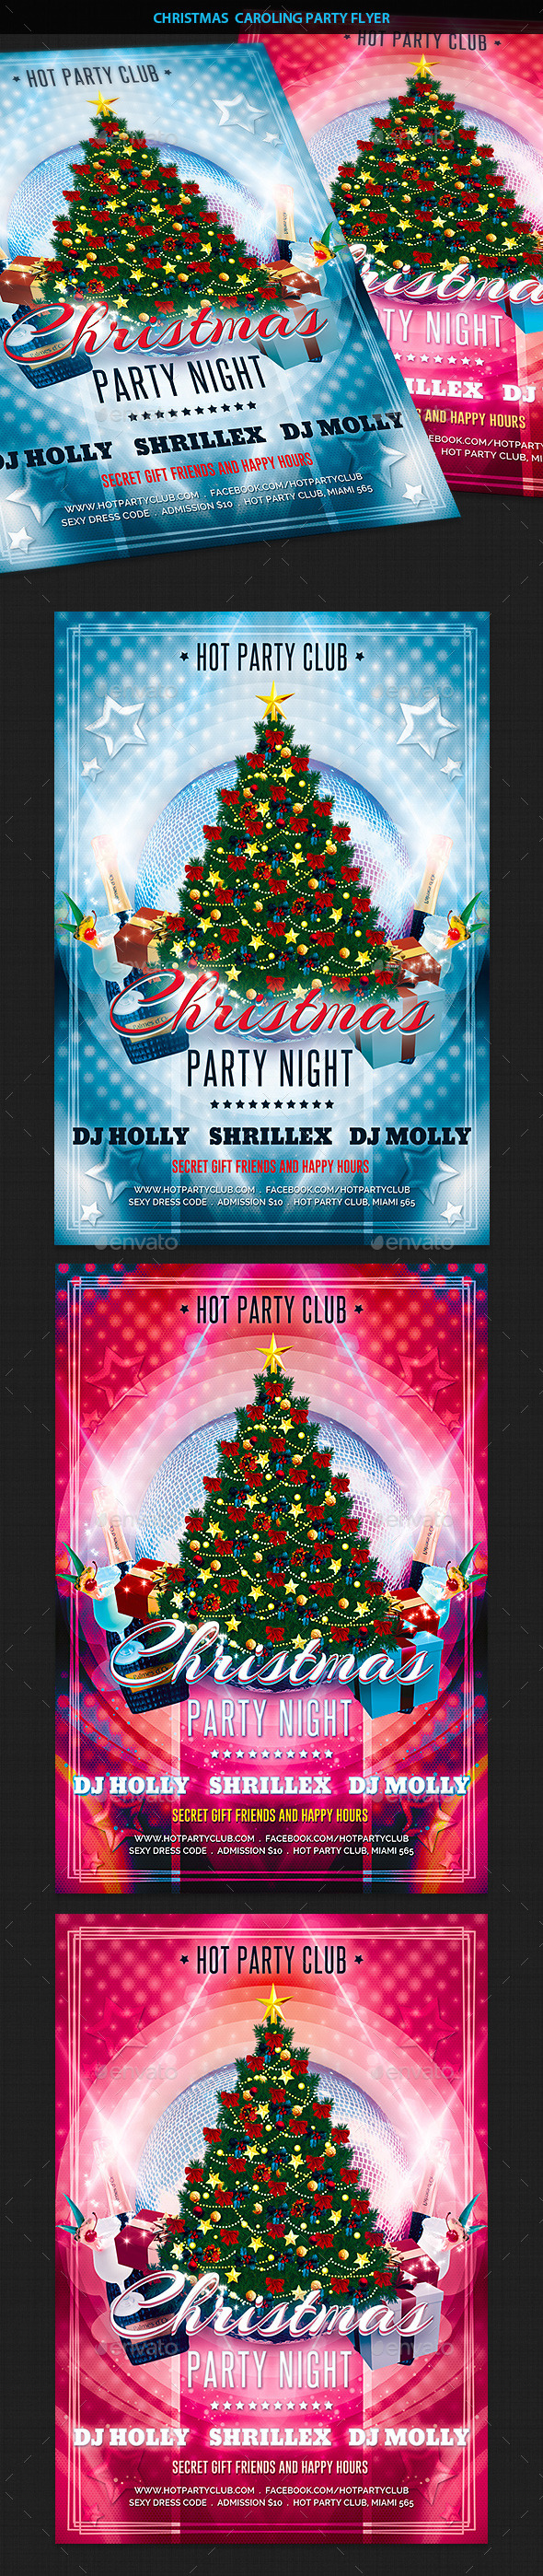 Christmas Caroling Party Flyer - Clubs & Parties Events